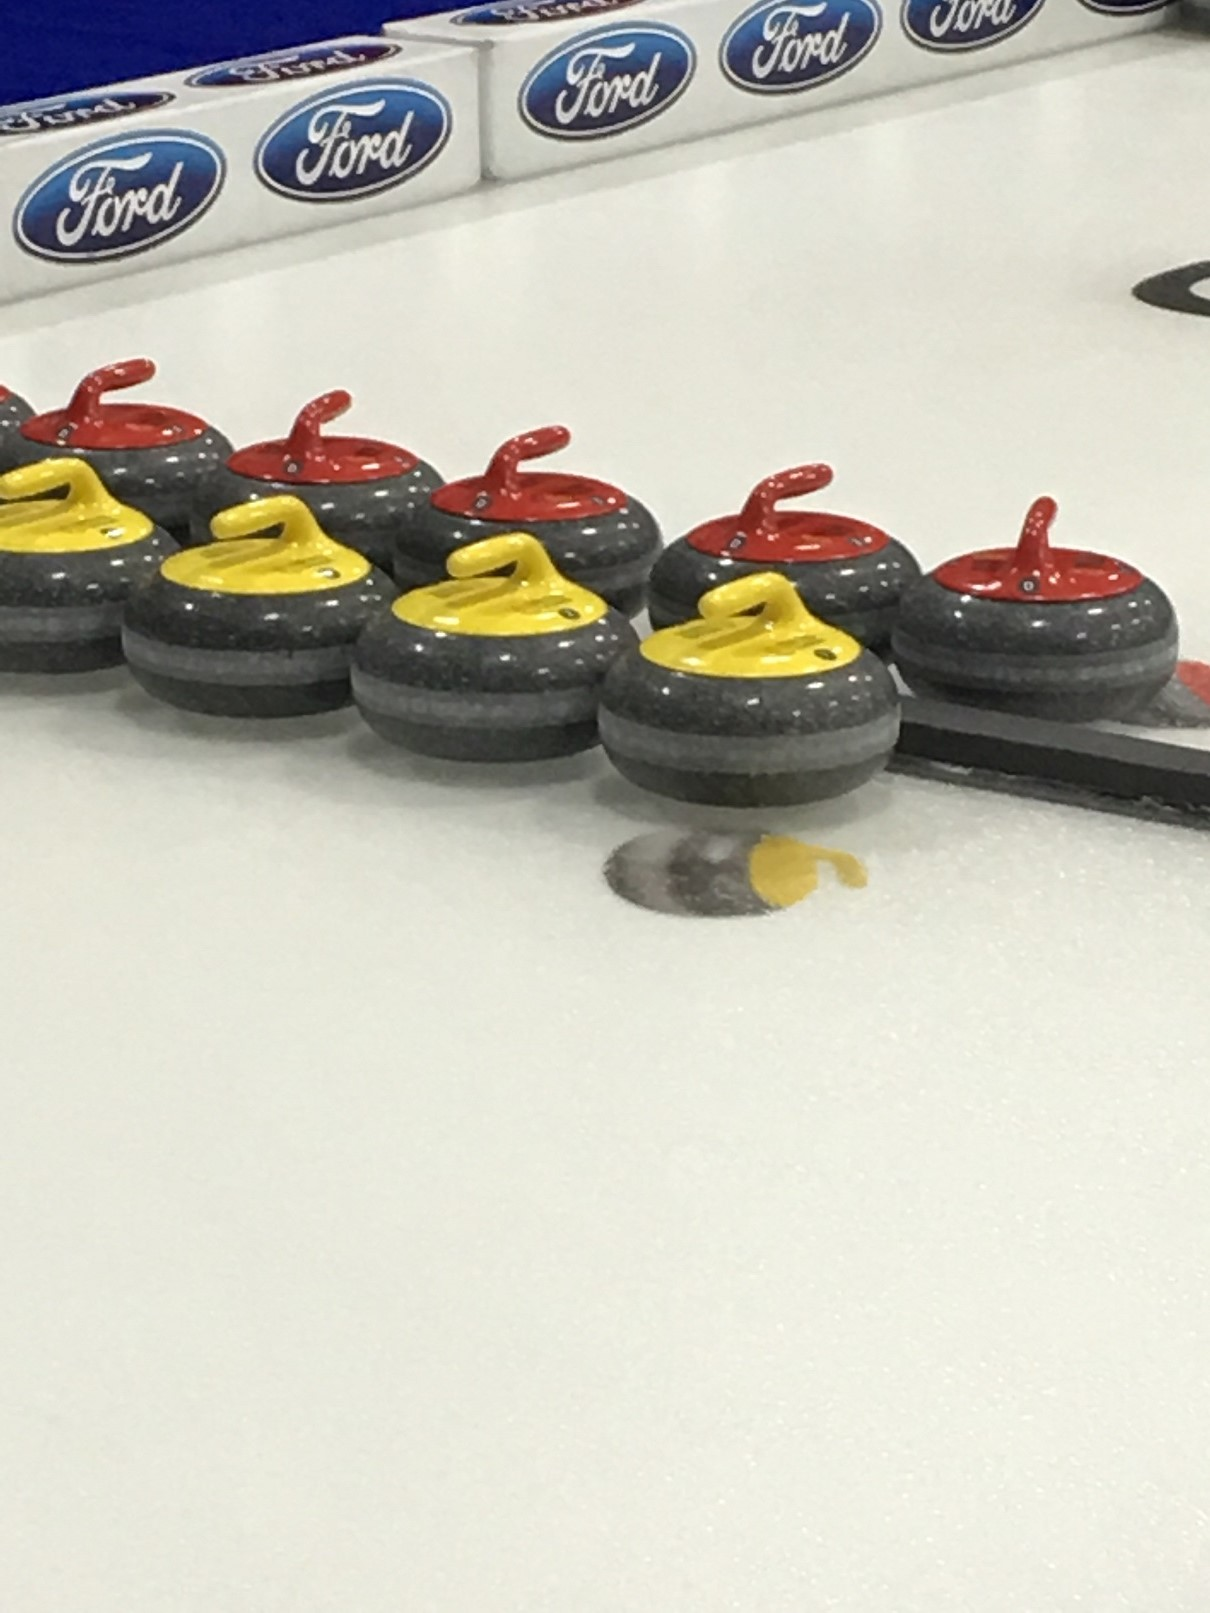 Who Will Host The 2020 Curling Brier?